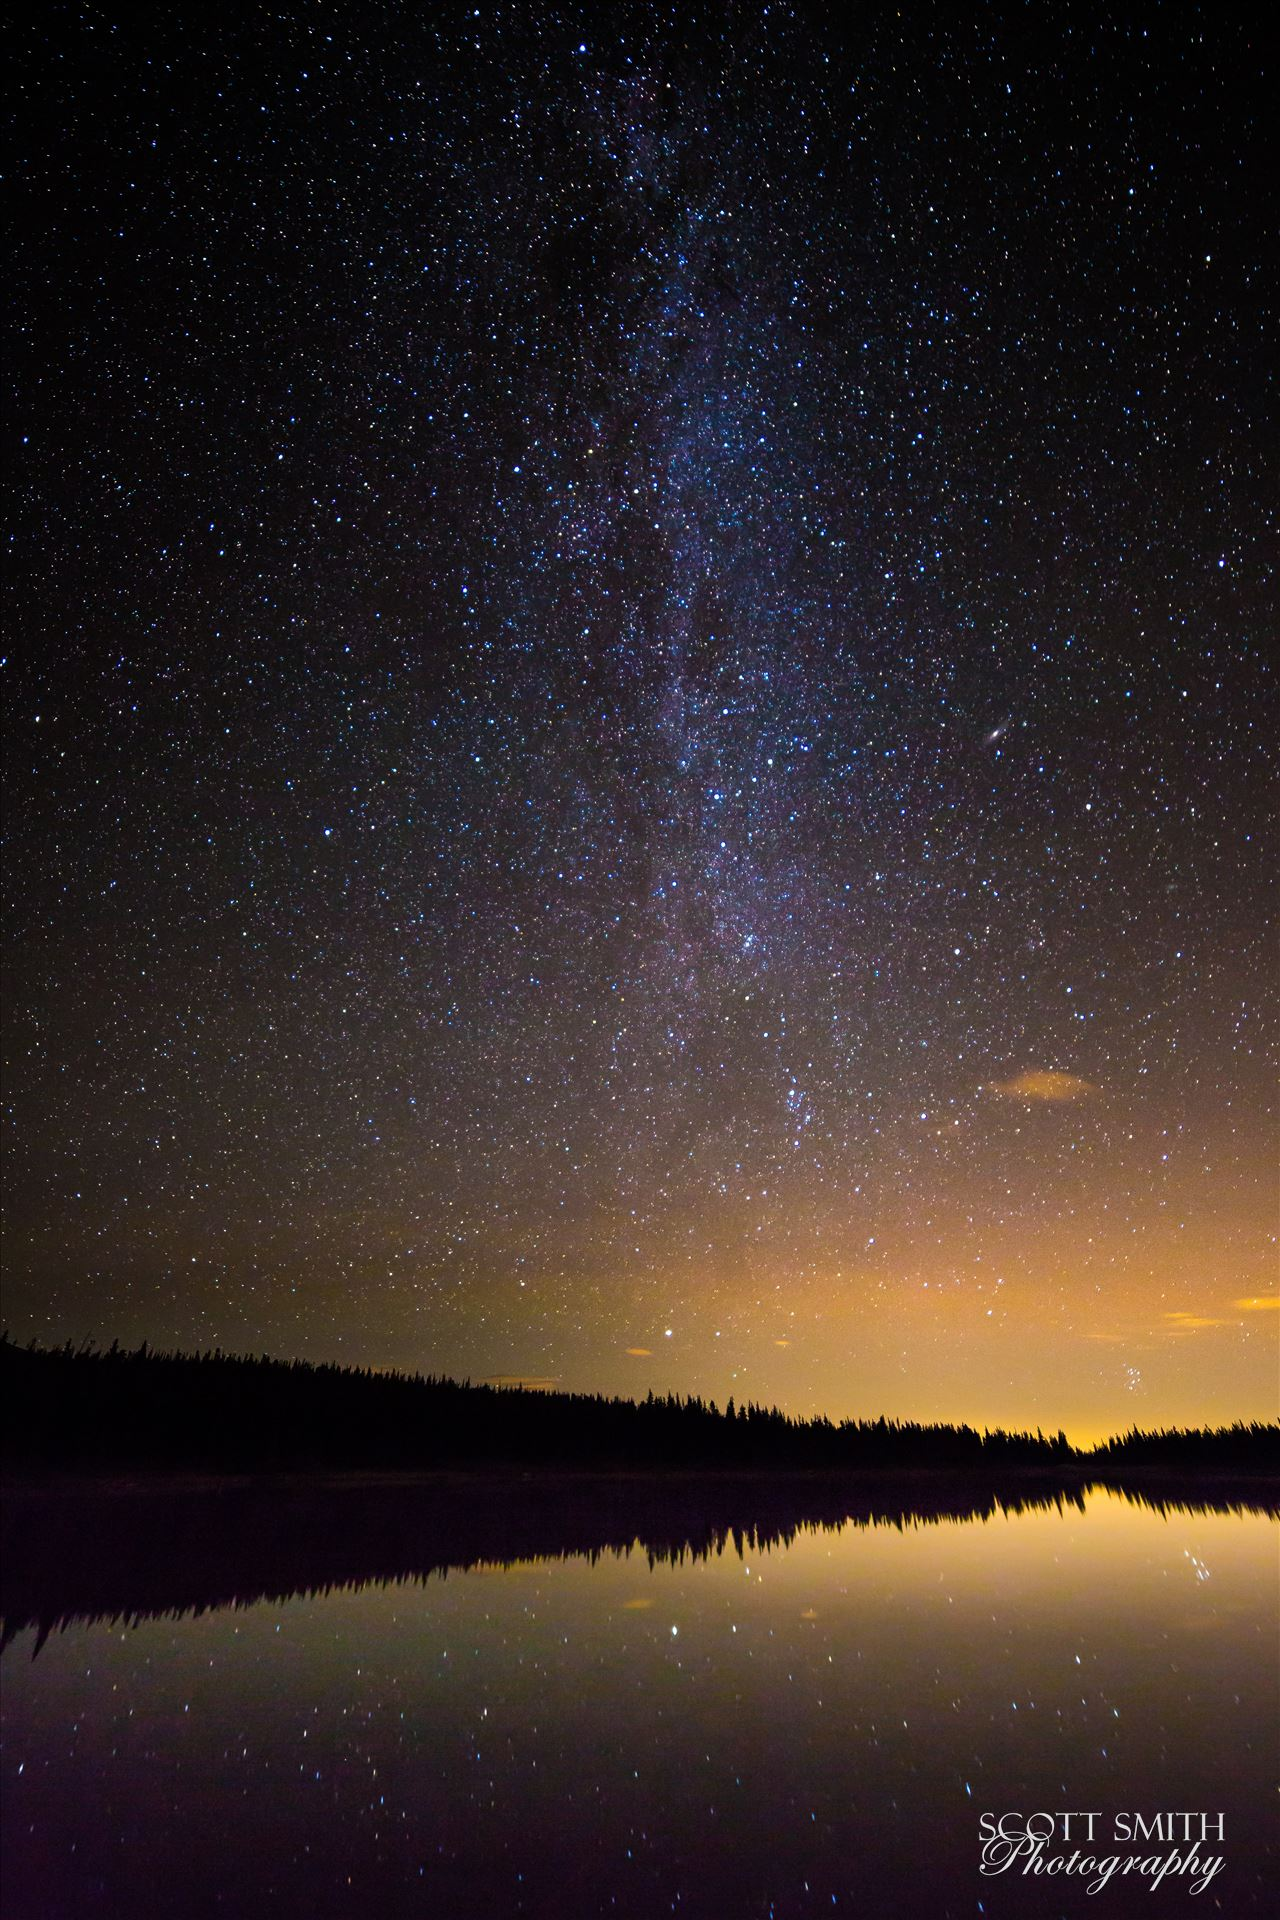 Milky Way over Brainard Lake - The Milky Way over Brainard Lake, on August 13th, during the Perseid meteor shower. No meteorites show in the image, but the reflection of the stars on the water is striking. The Andromeda galaxy makes an appearance, in the middle of the right half of the by D Scott Smith